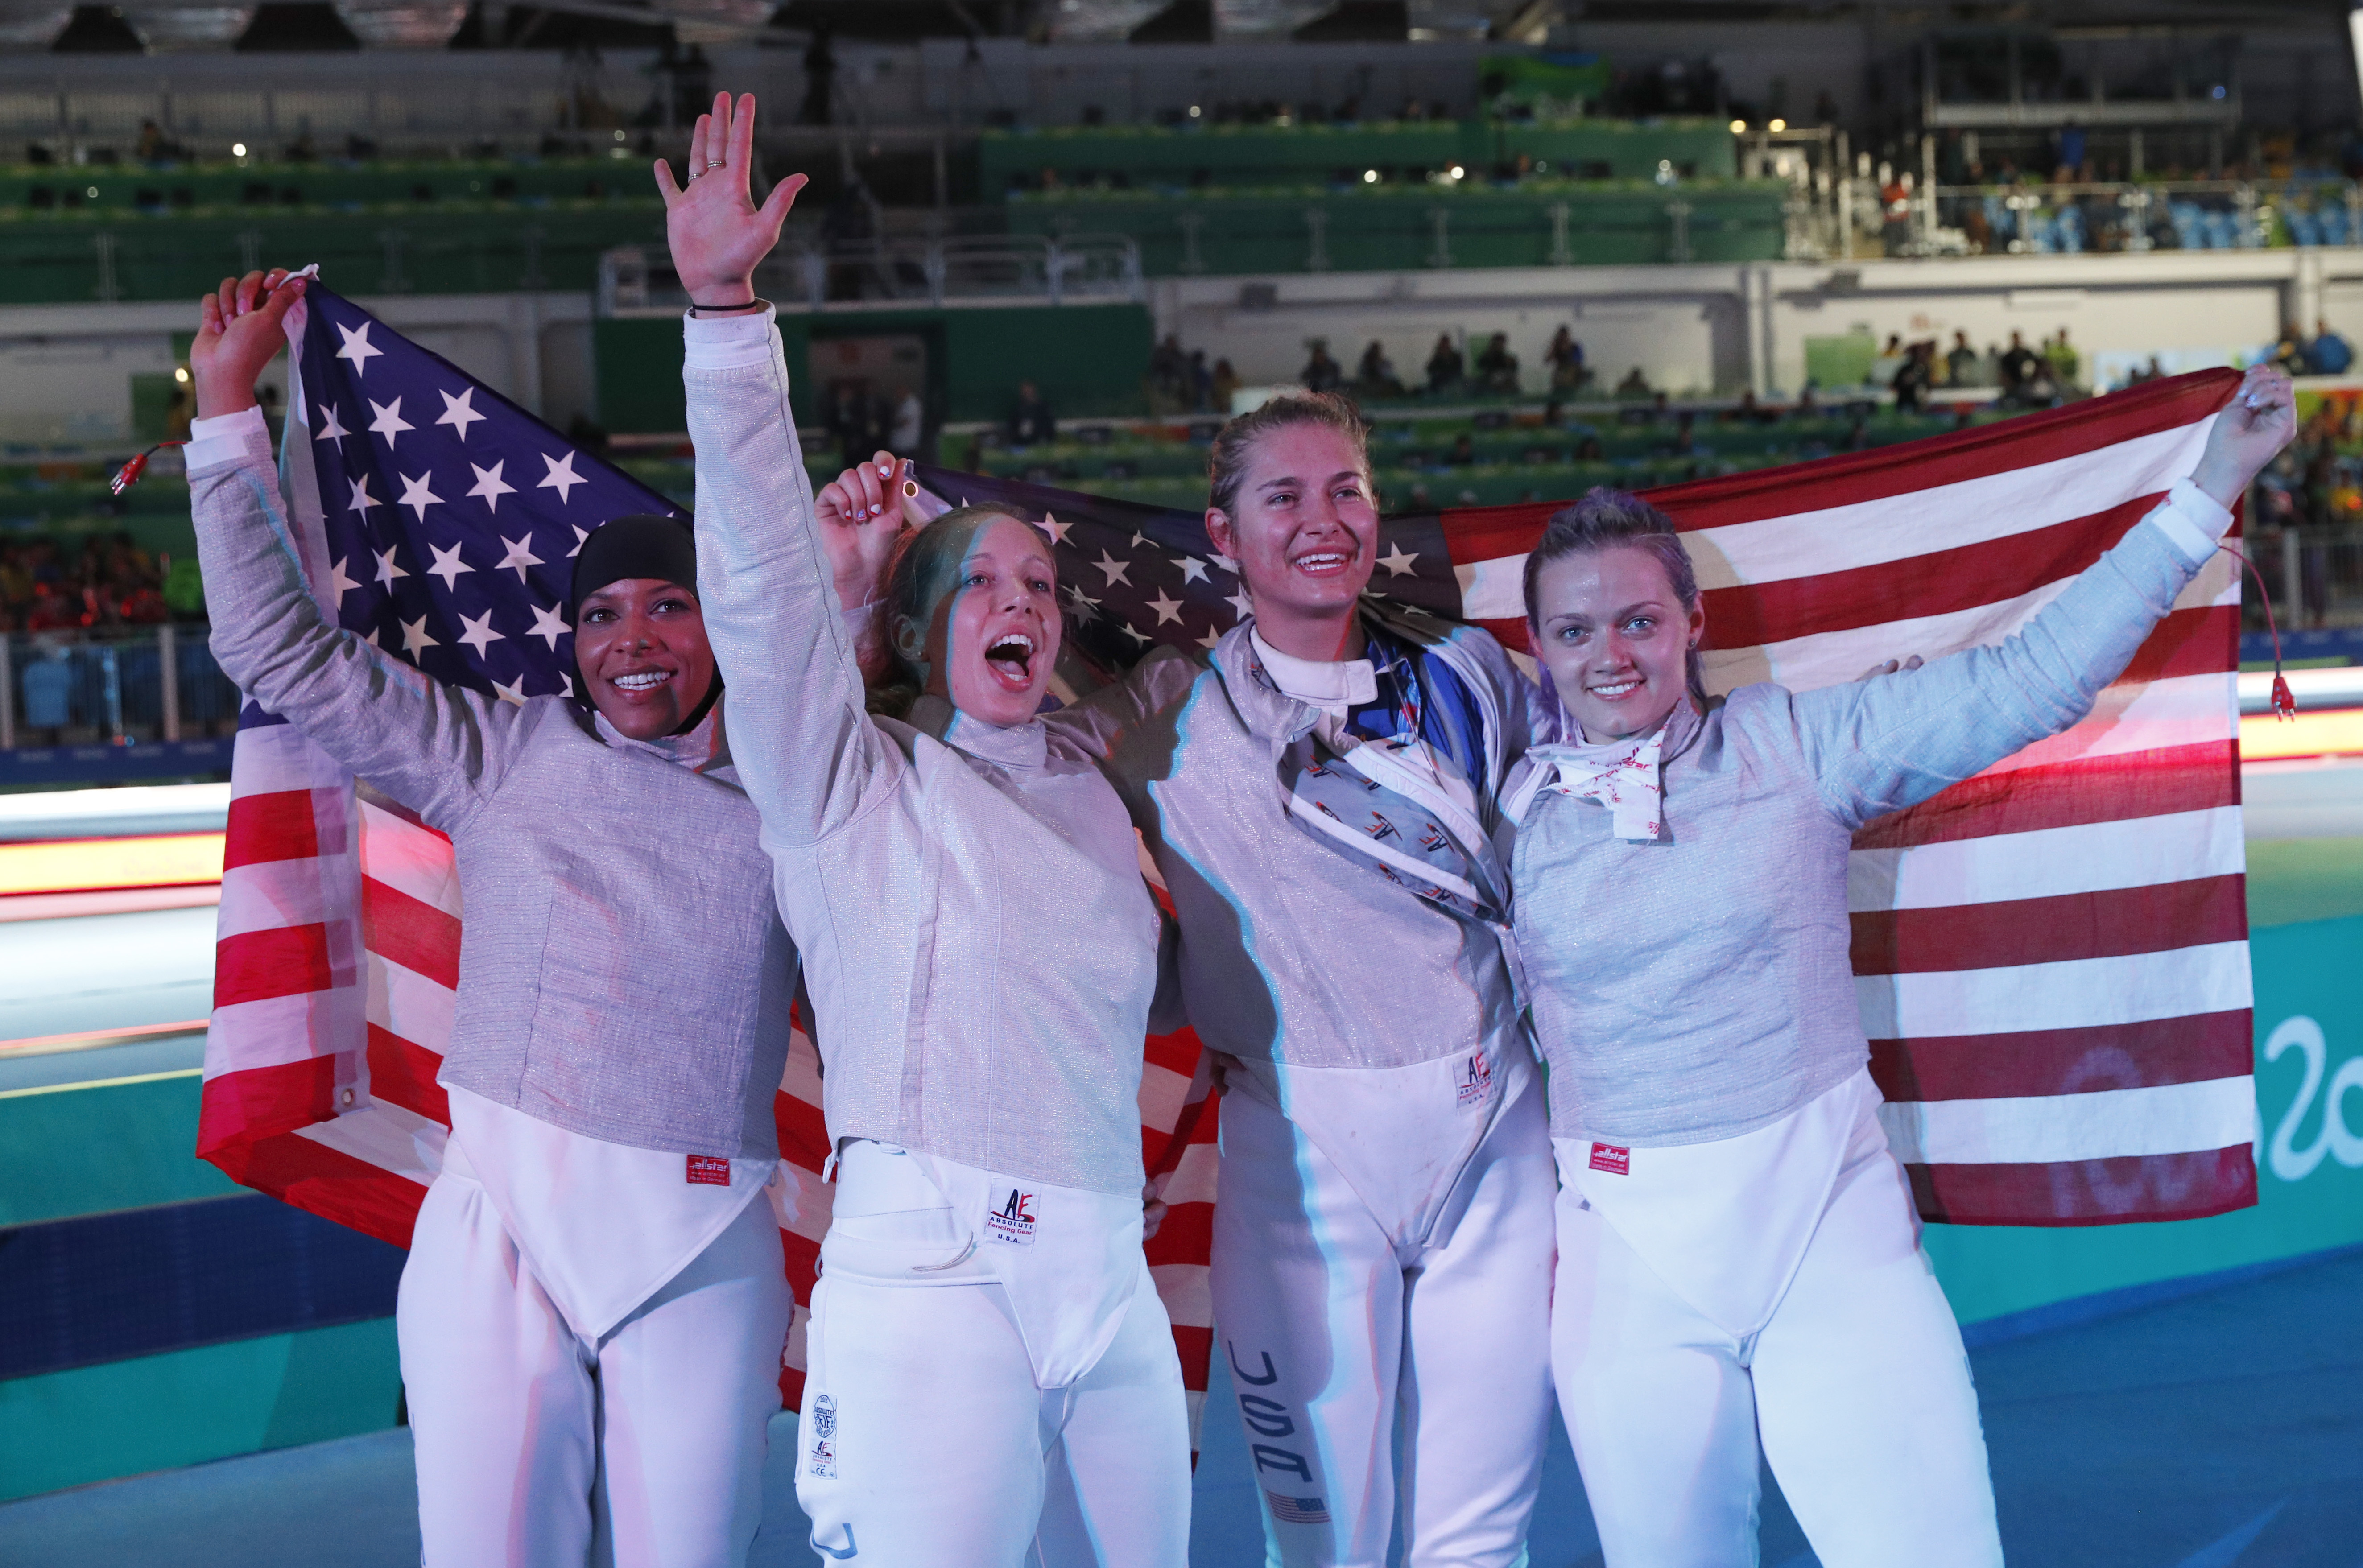 United States Women Fecing team celebrates after defeating Italy during the Bronze medal compertition in the women's team sabre fencing competition at the 2016 Summer Olympics in Rio de Janeiro, Brazil, Saturday, Aug. 13, 2016. (AP Photo/Vincent Thian)